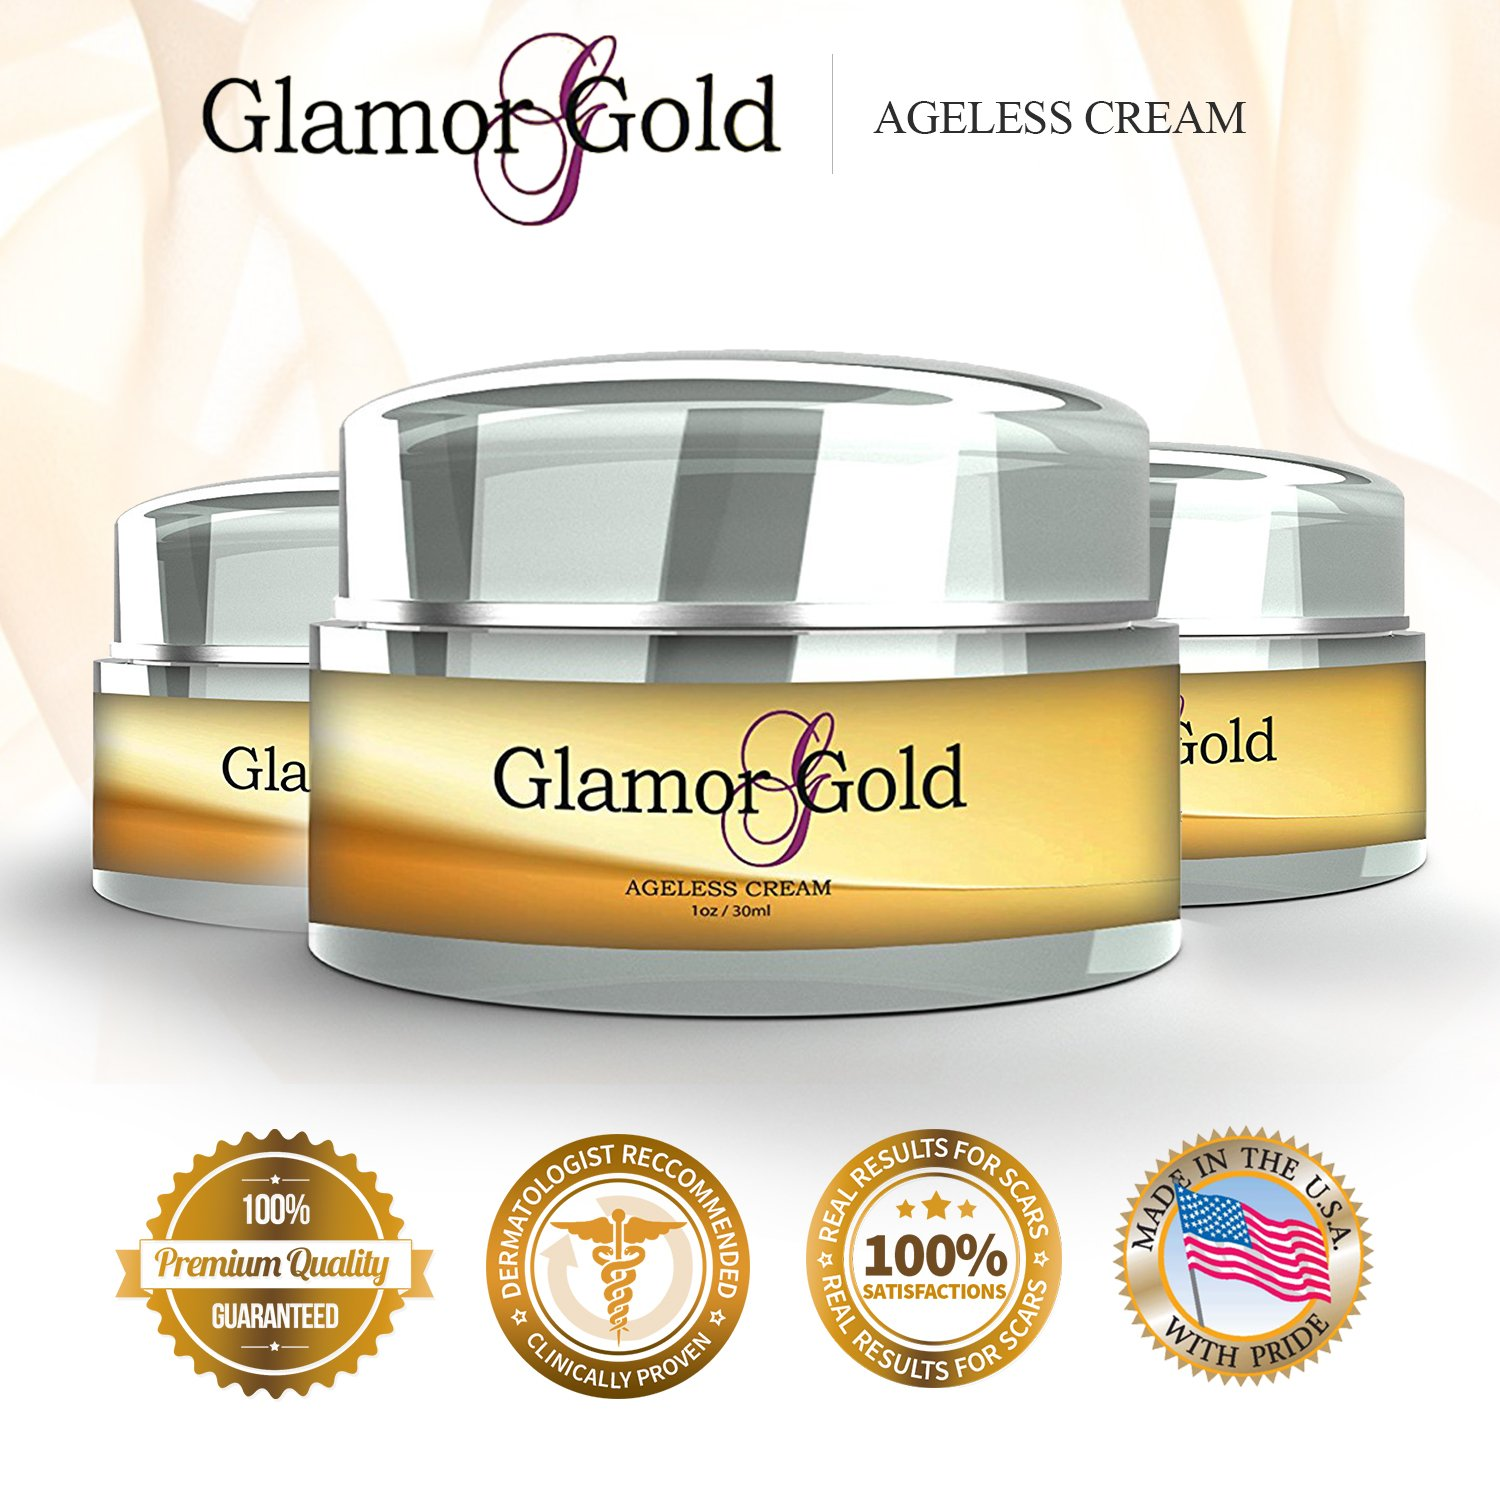 Glamor Gold Ageless Cream- Anti-Aging Skincare for Fine Lines and Wrinkles – Collagen Production